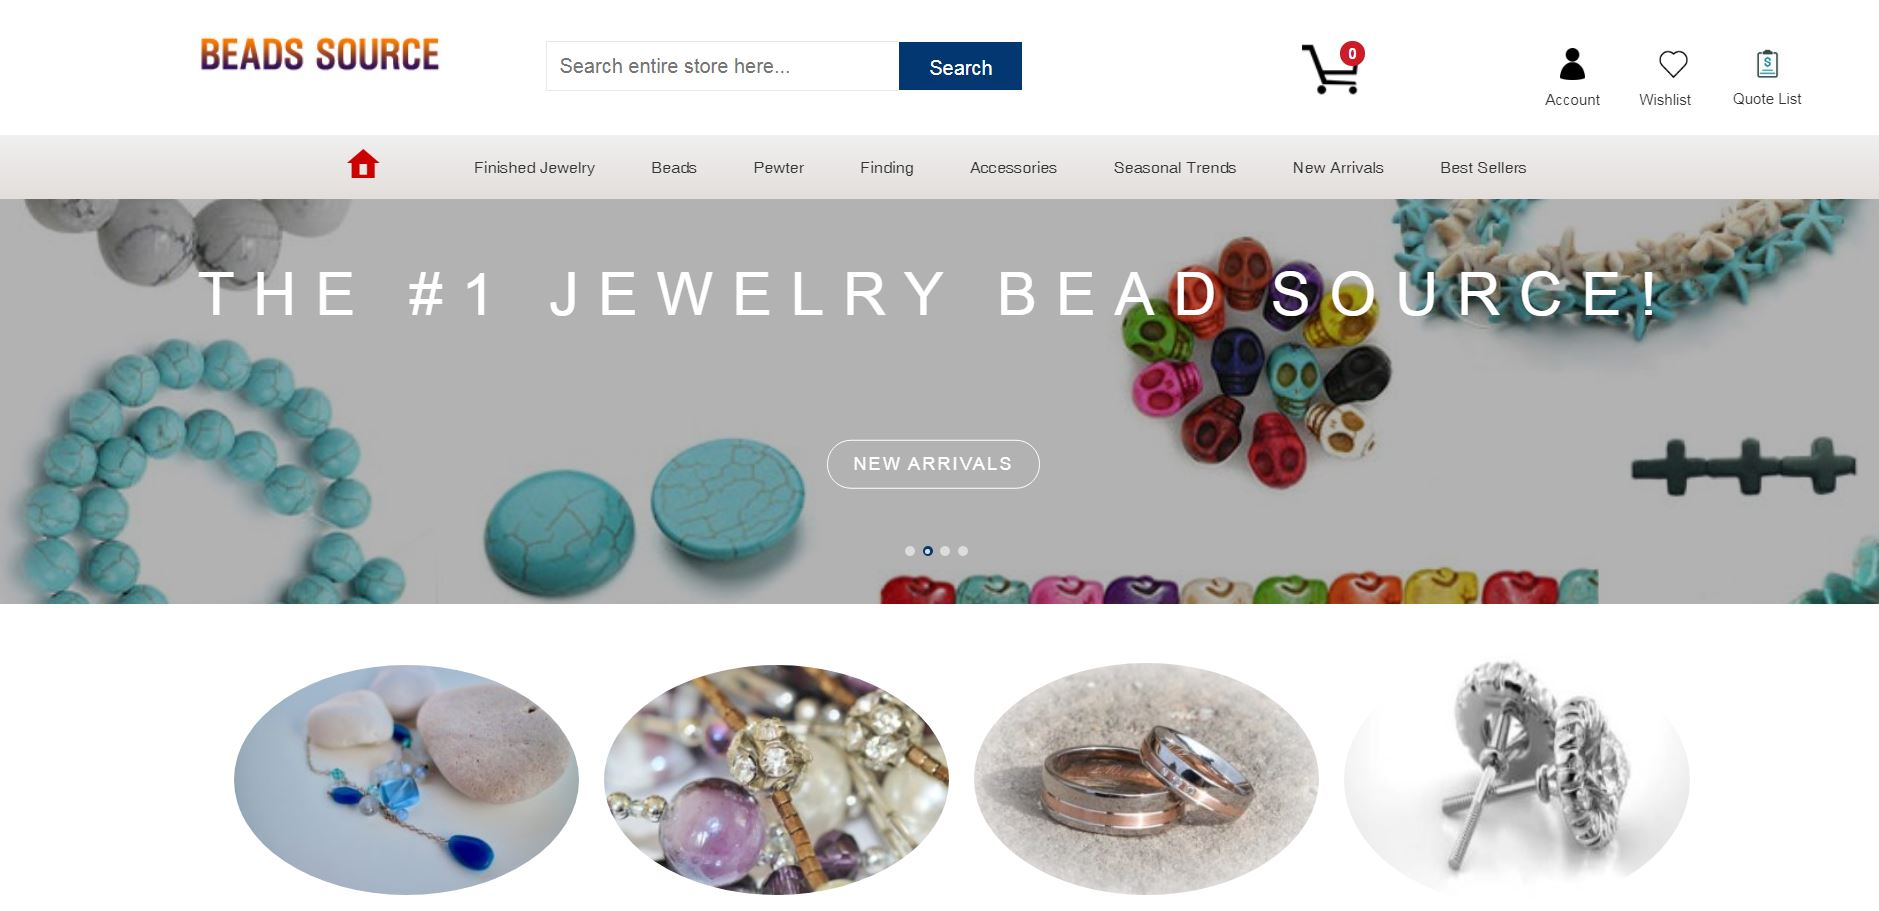 www.beadssource.com